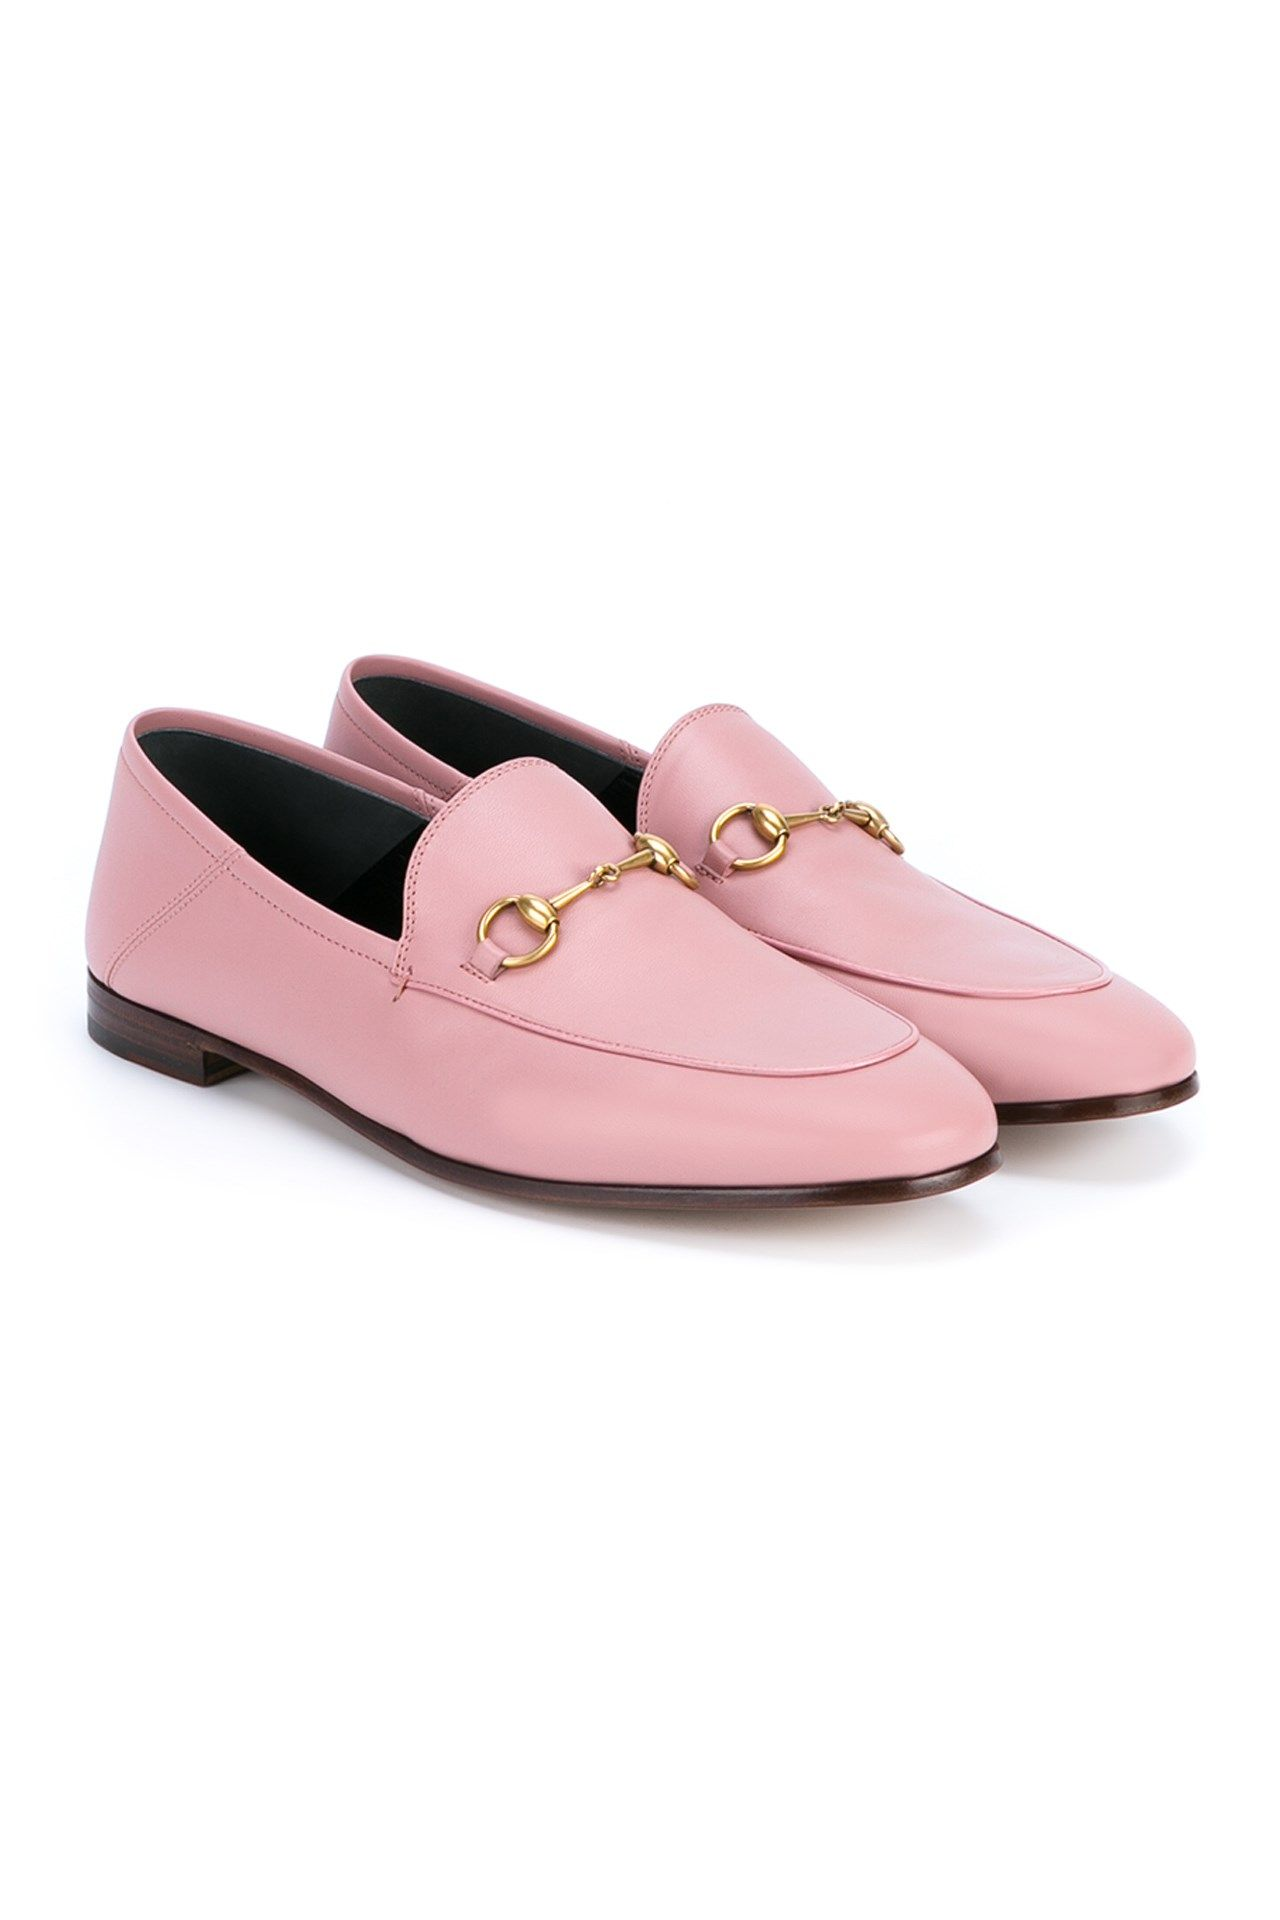 f4ee6ae4ea4 Buy Now  In-Between Season Flat Shoes